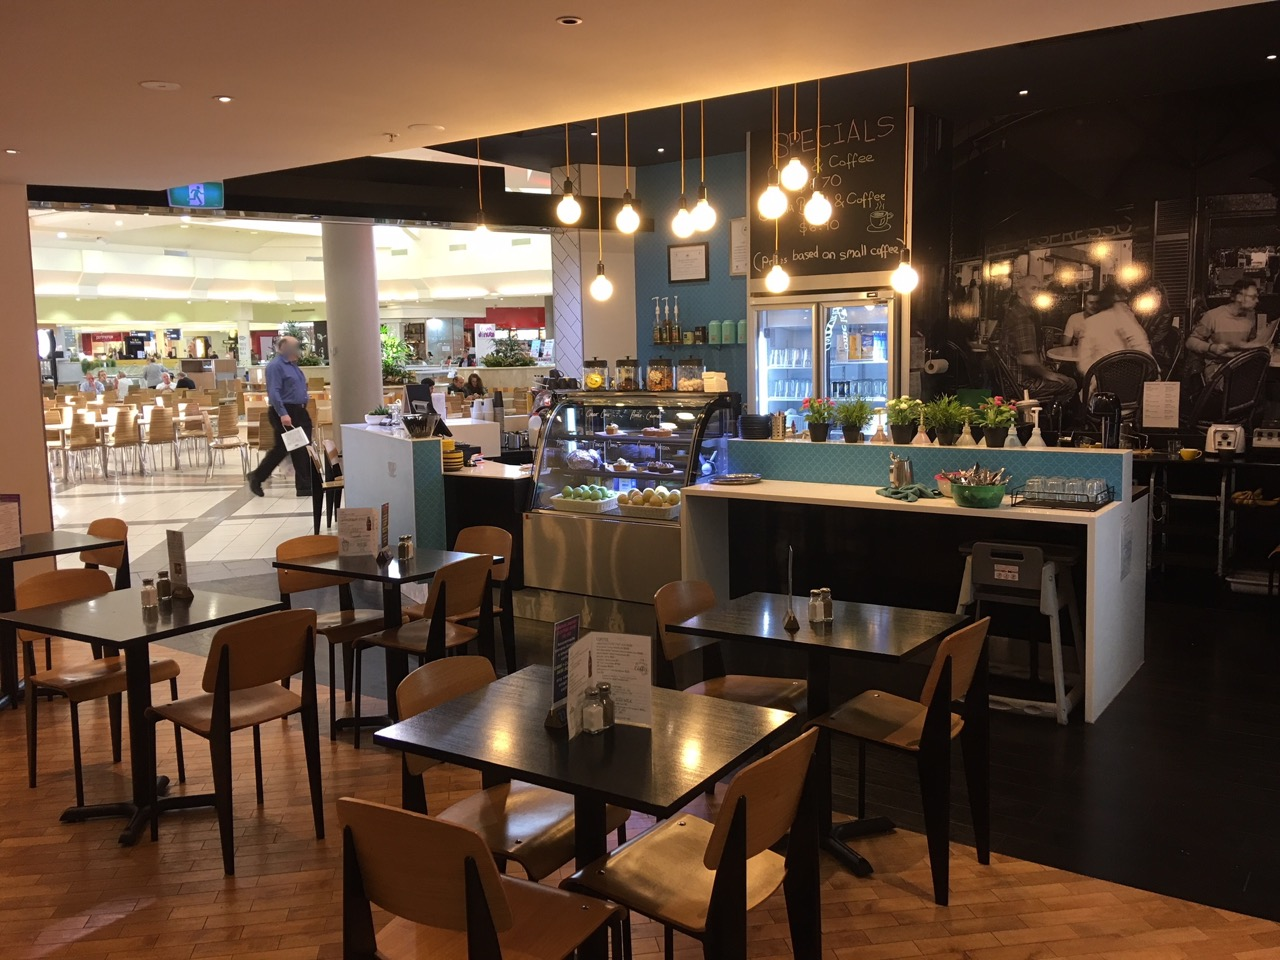 Under Offer -Cafe Takeaway Restaurant Business For Sale-Shopping Centre Location